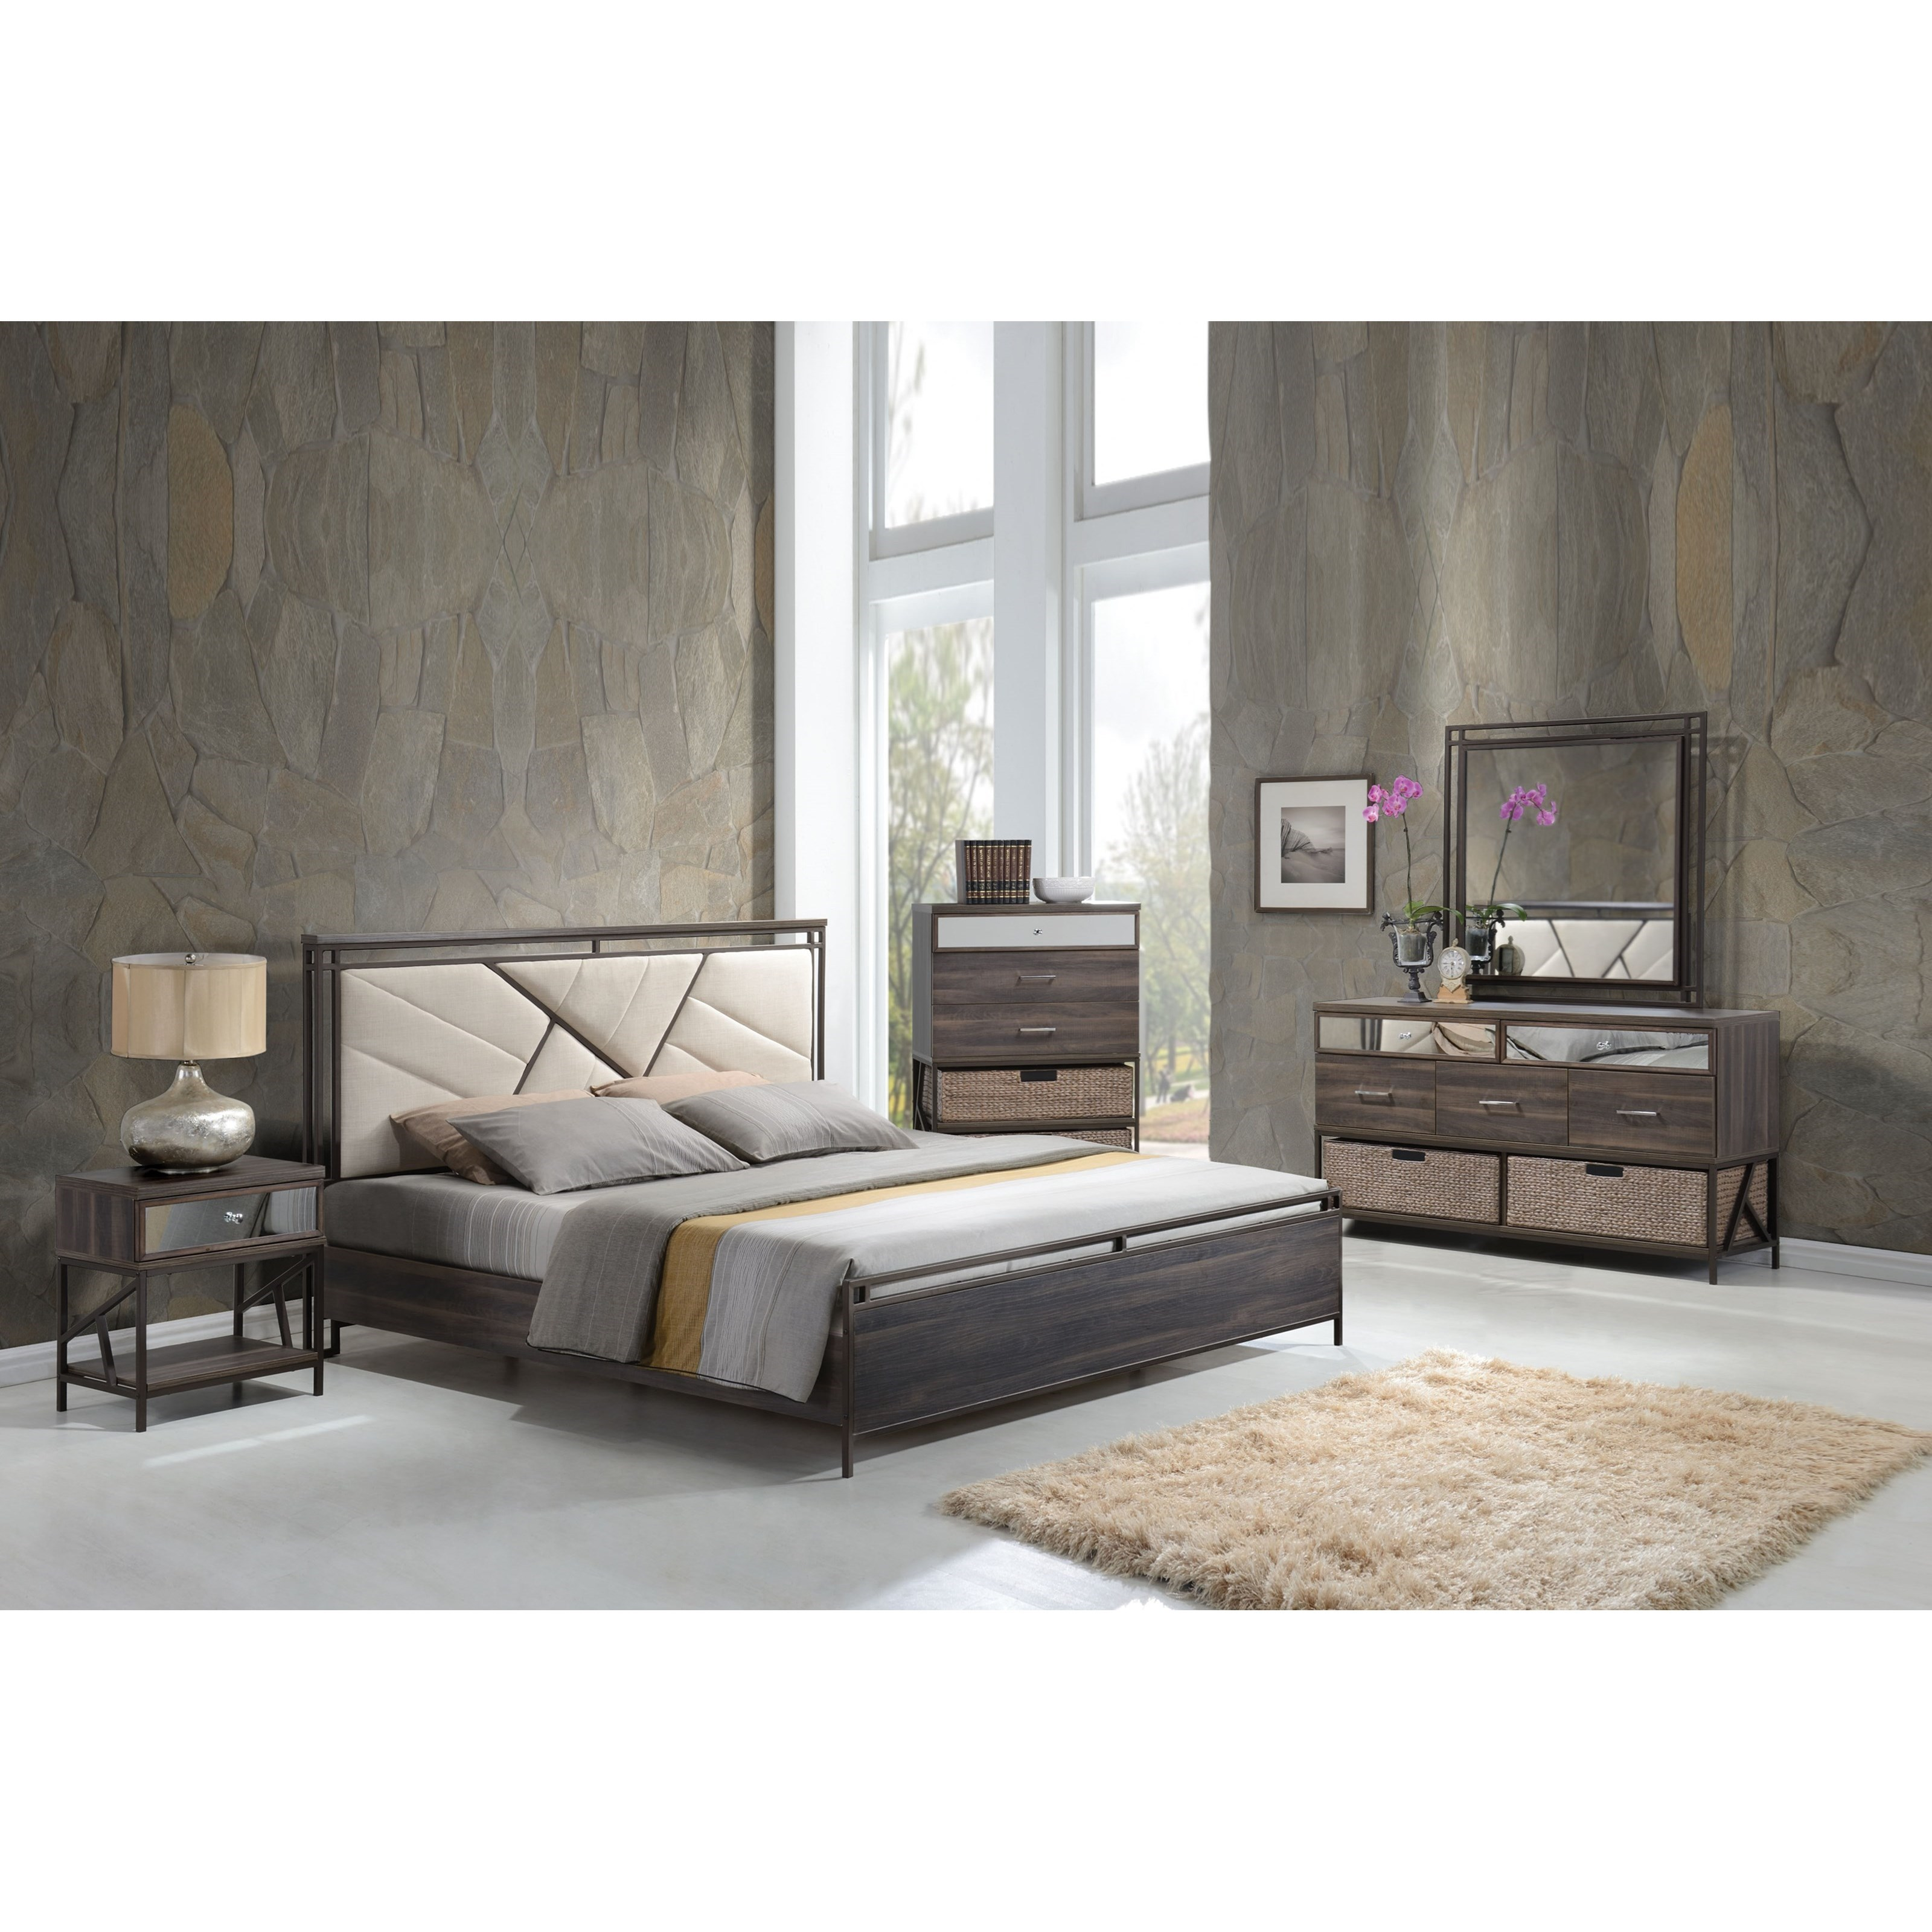 Adrianna California King Bedroom Group by Acme Furniture at A1 Furniture & Mattress